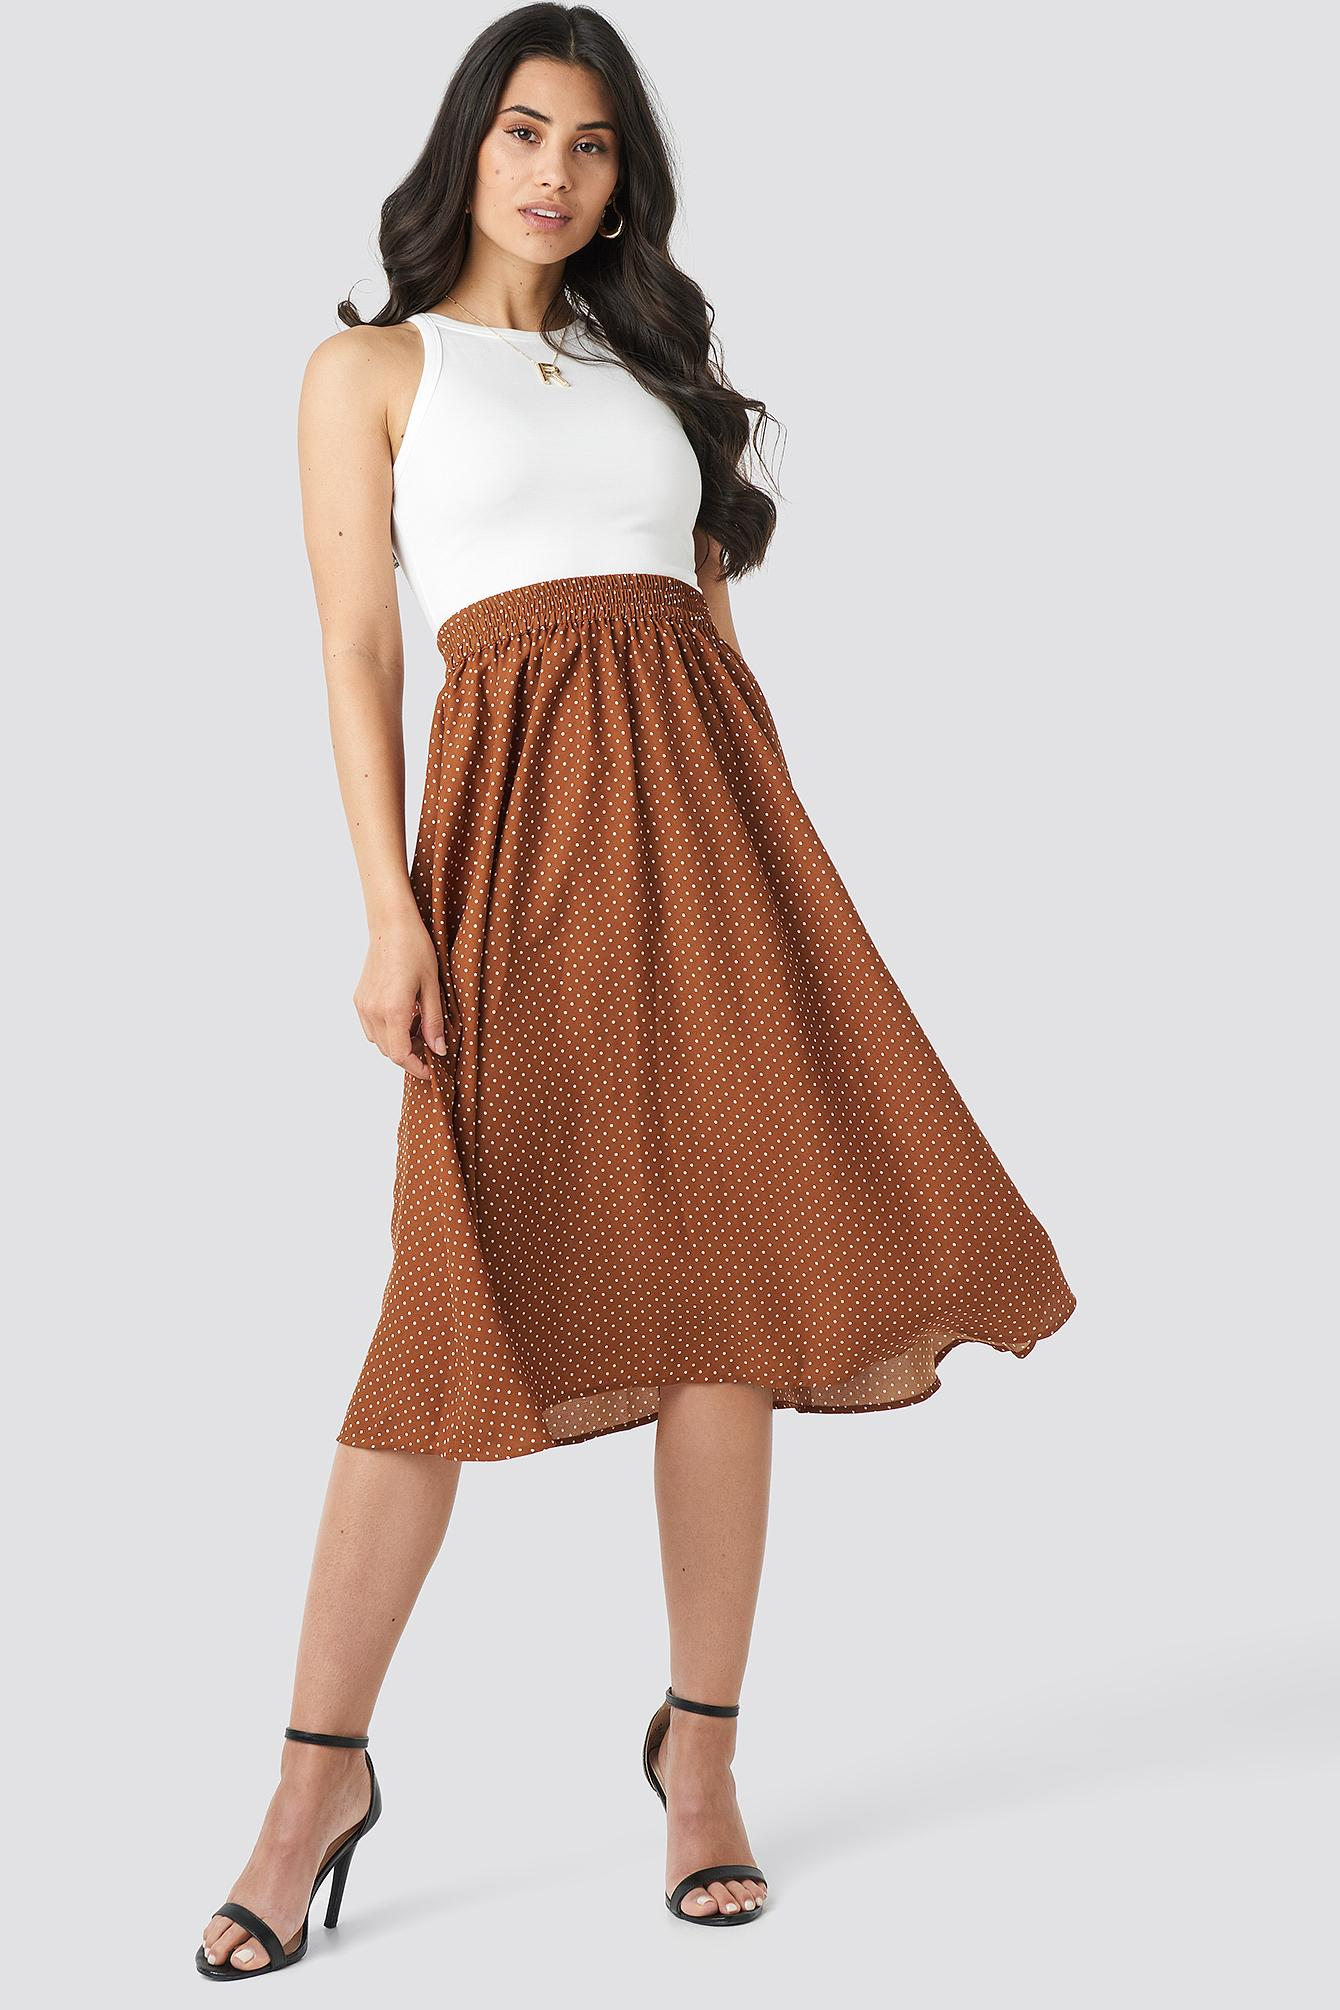 36c45765c5 NA-KD Dotted Midi Skirt Brown in Brown - Lyst